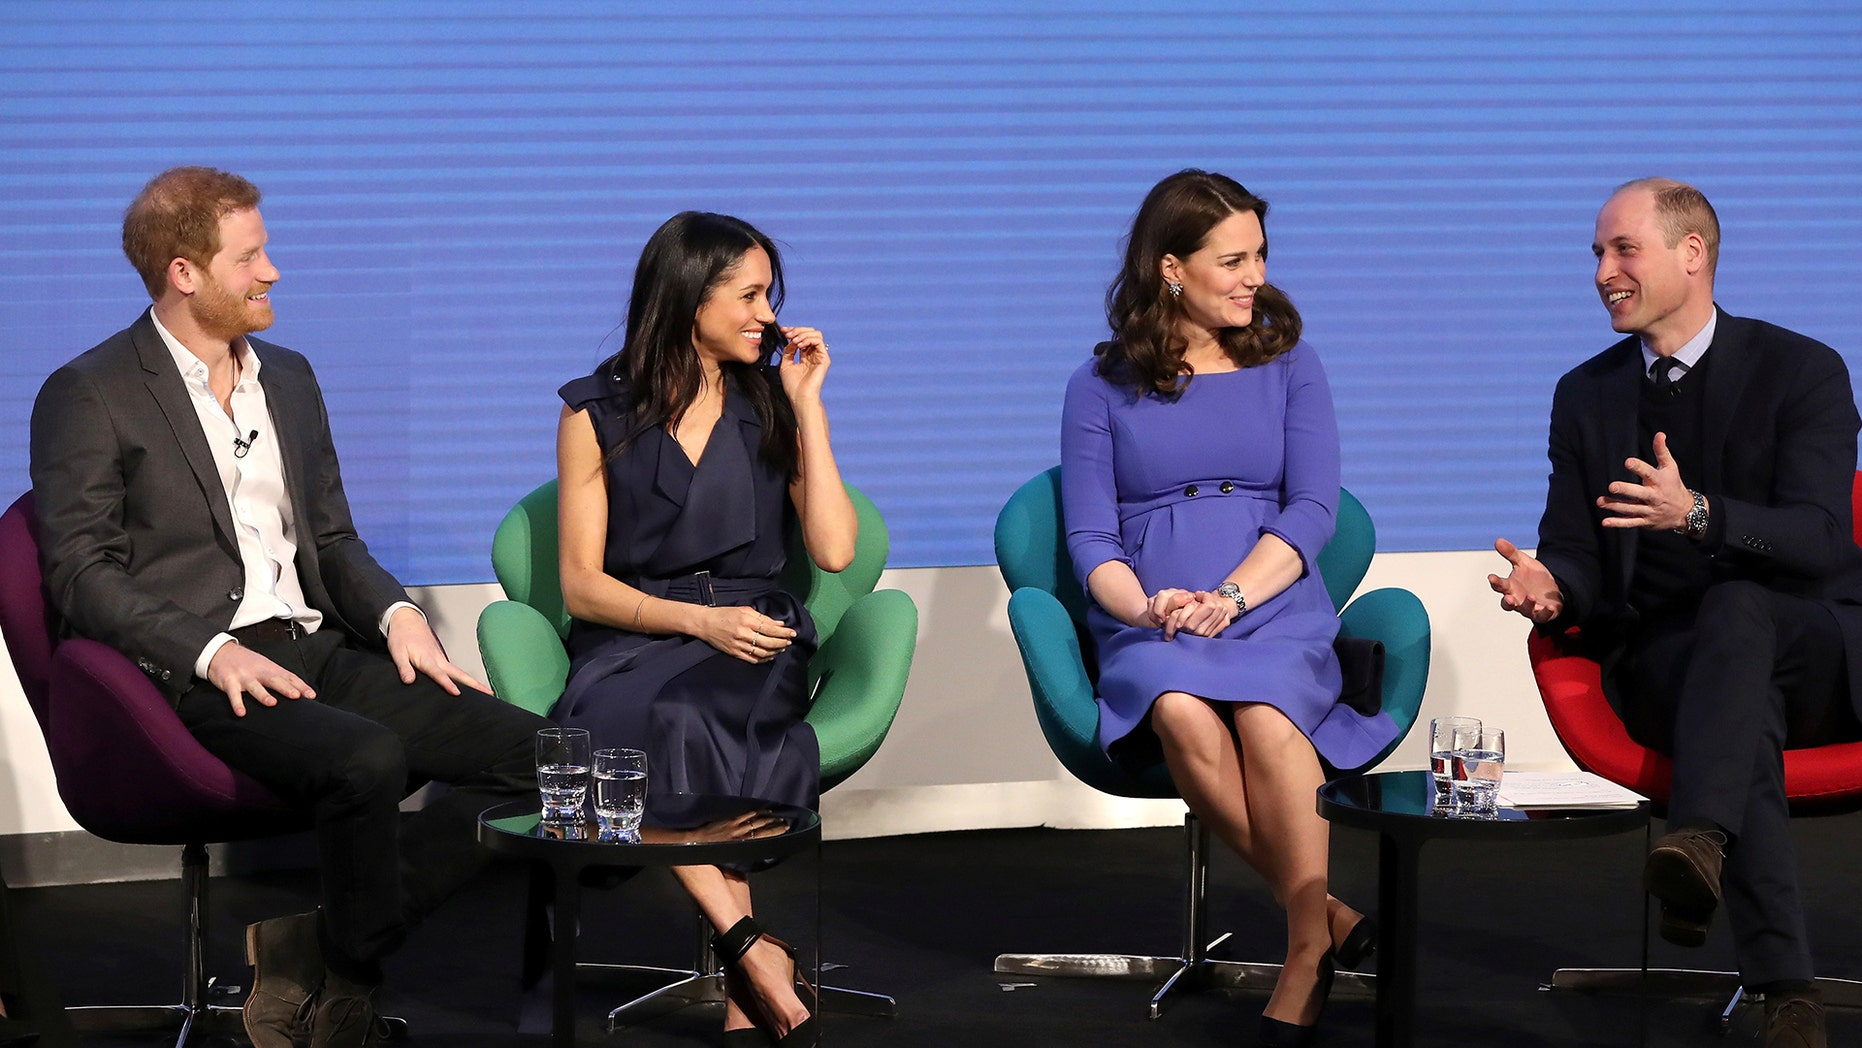 Prince Harry, Meghan Markle, Kate Middleton and Prince William